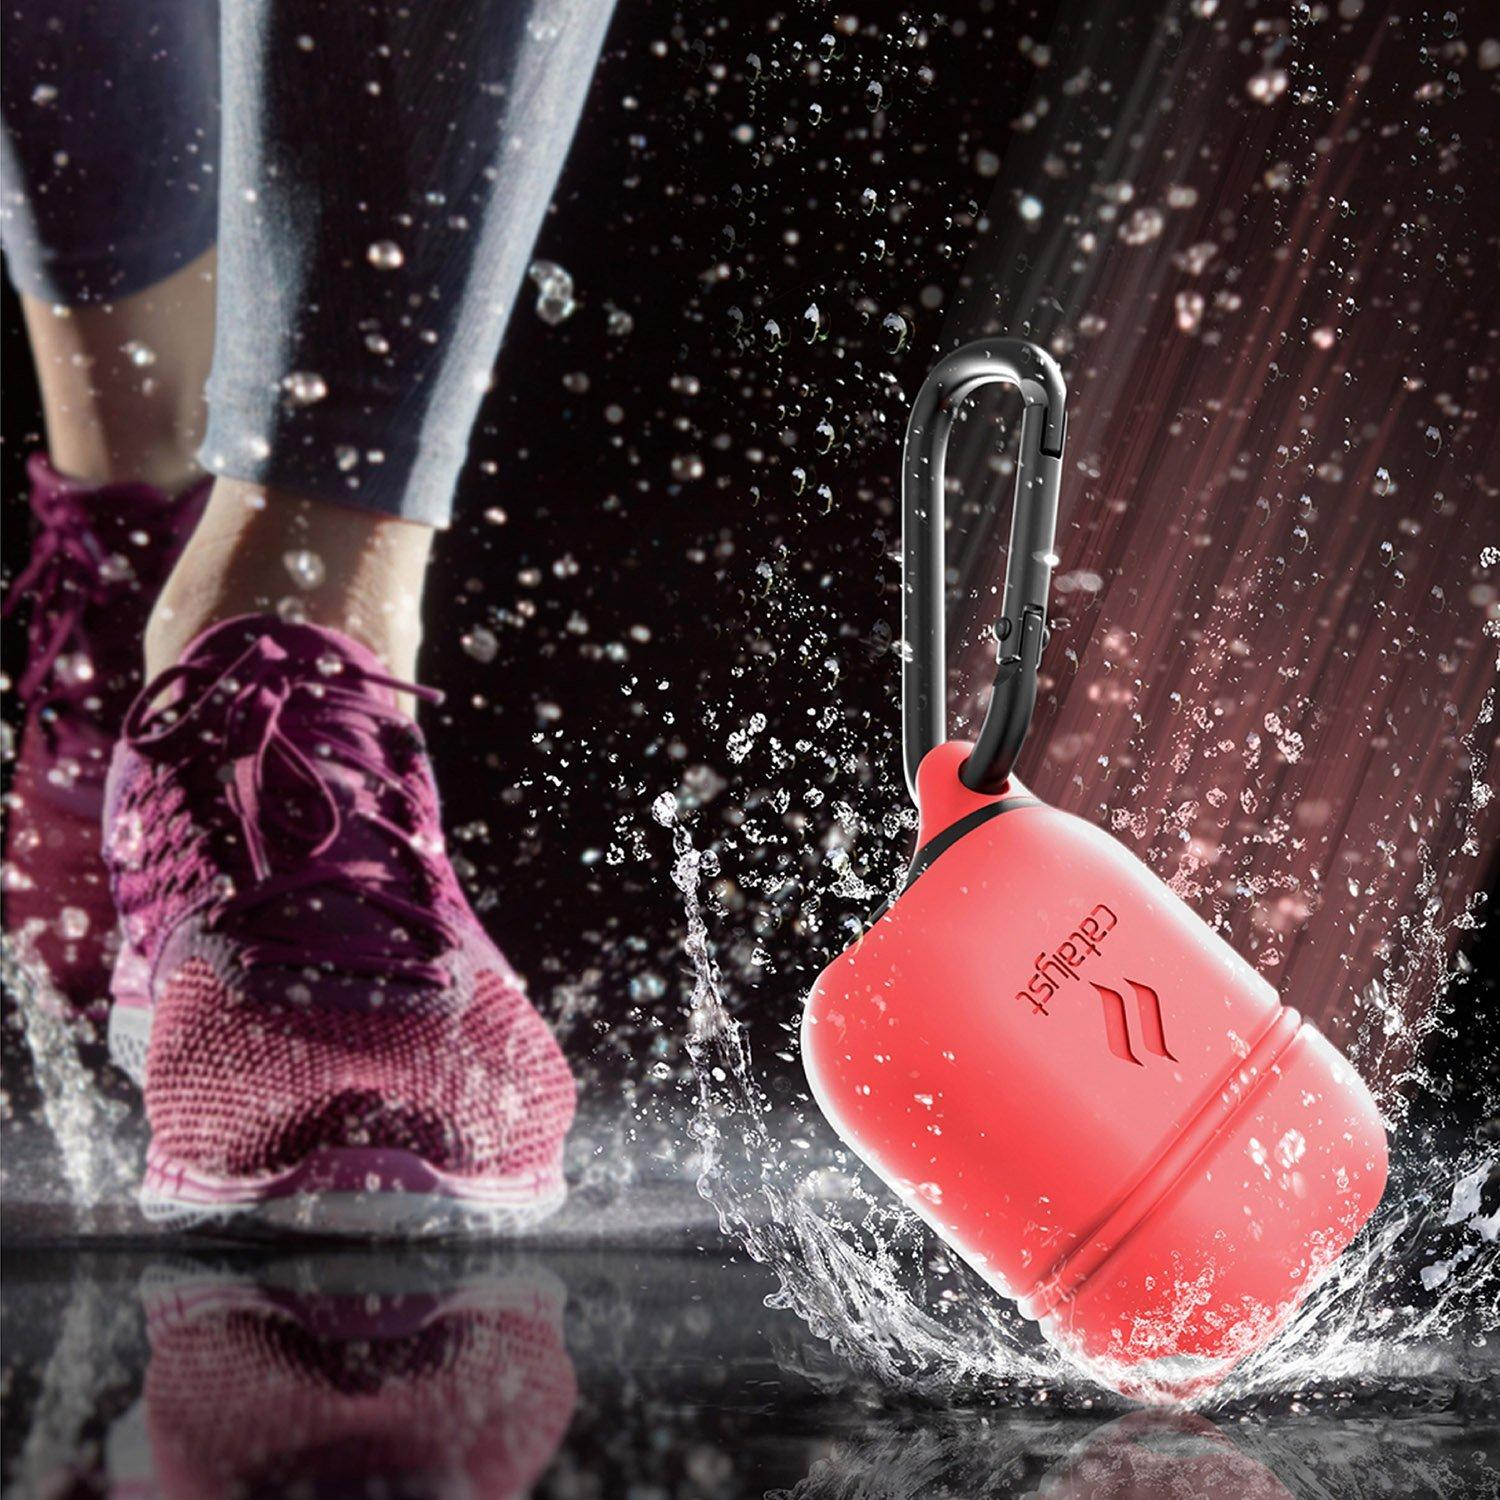 Catalyst Waterproof Apple AirPods Case - Coral